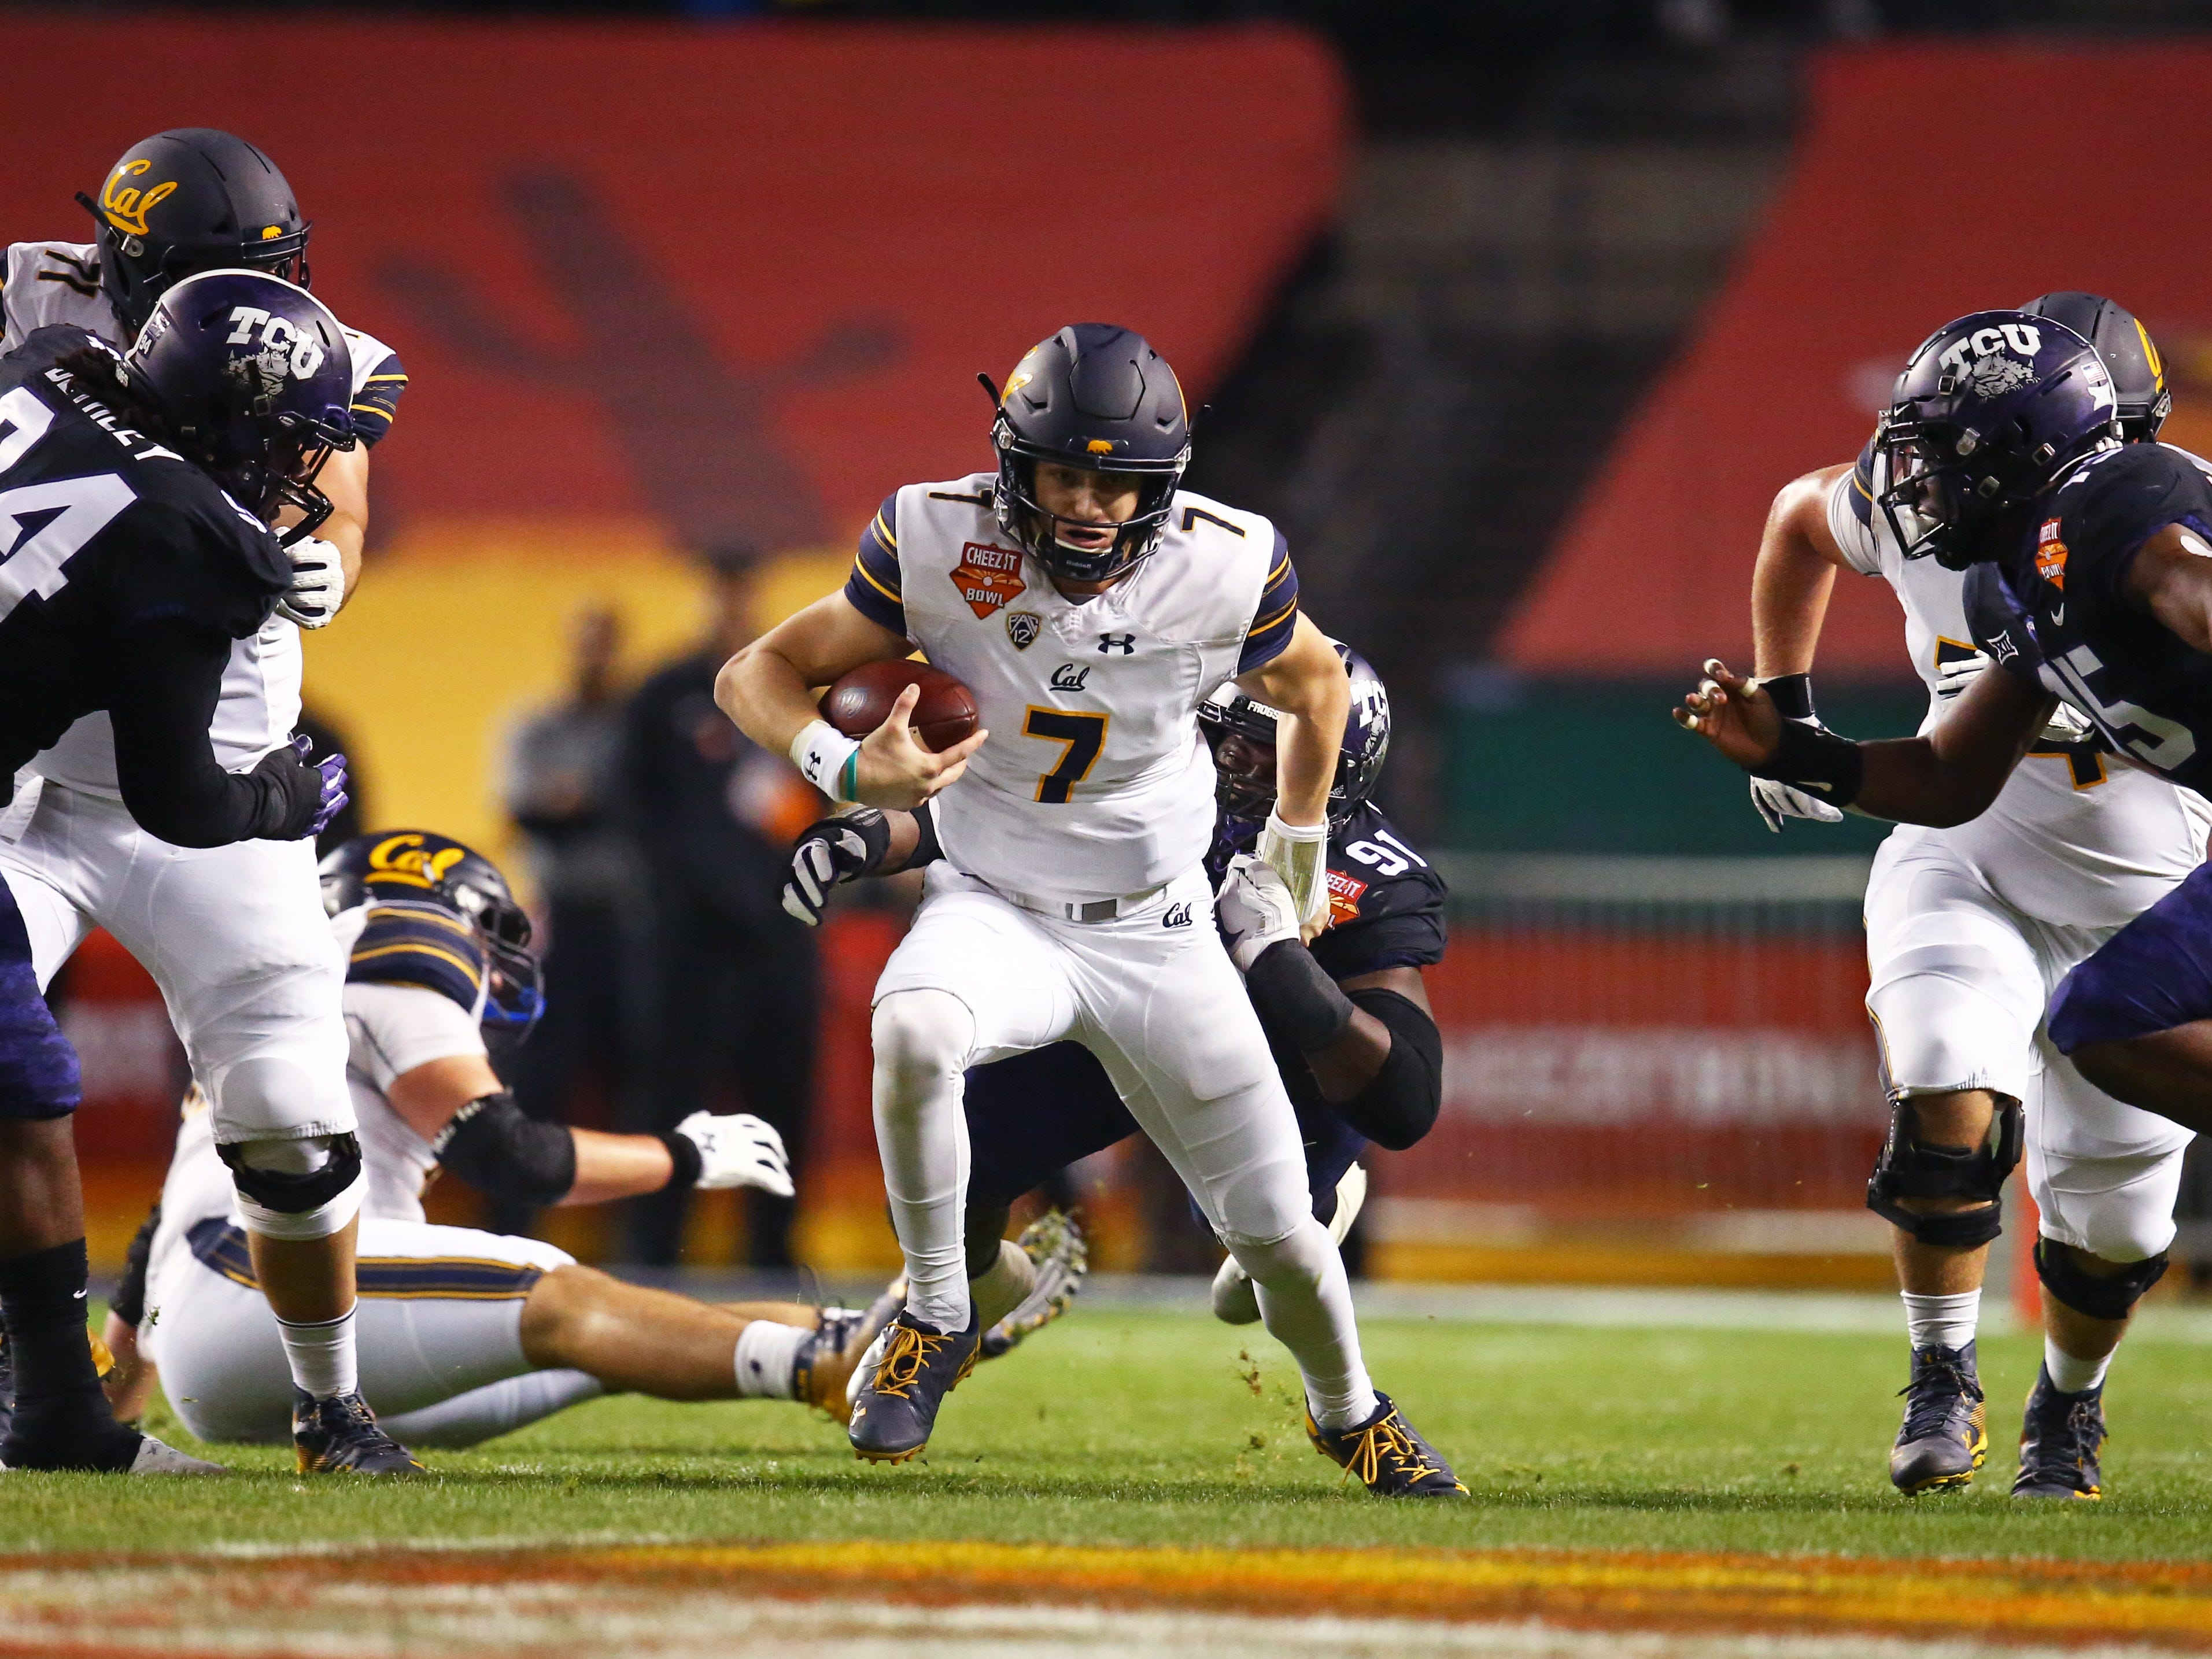 Dec 26, 2018; Phoenix, AZ, USA; California Golden Bears quarterback Chase Garbers (7) runs the ball against the Texas Christian Horned Frogs in the first half of the 2018 Cheez-It Bowl at Chase Field.